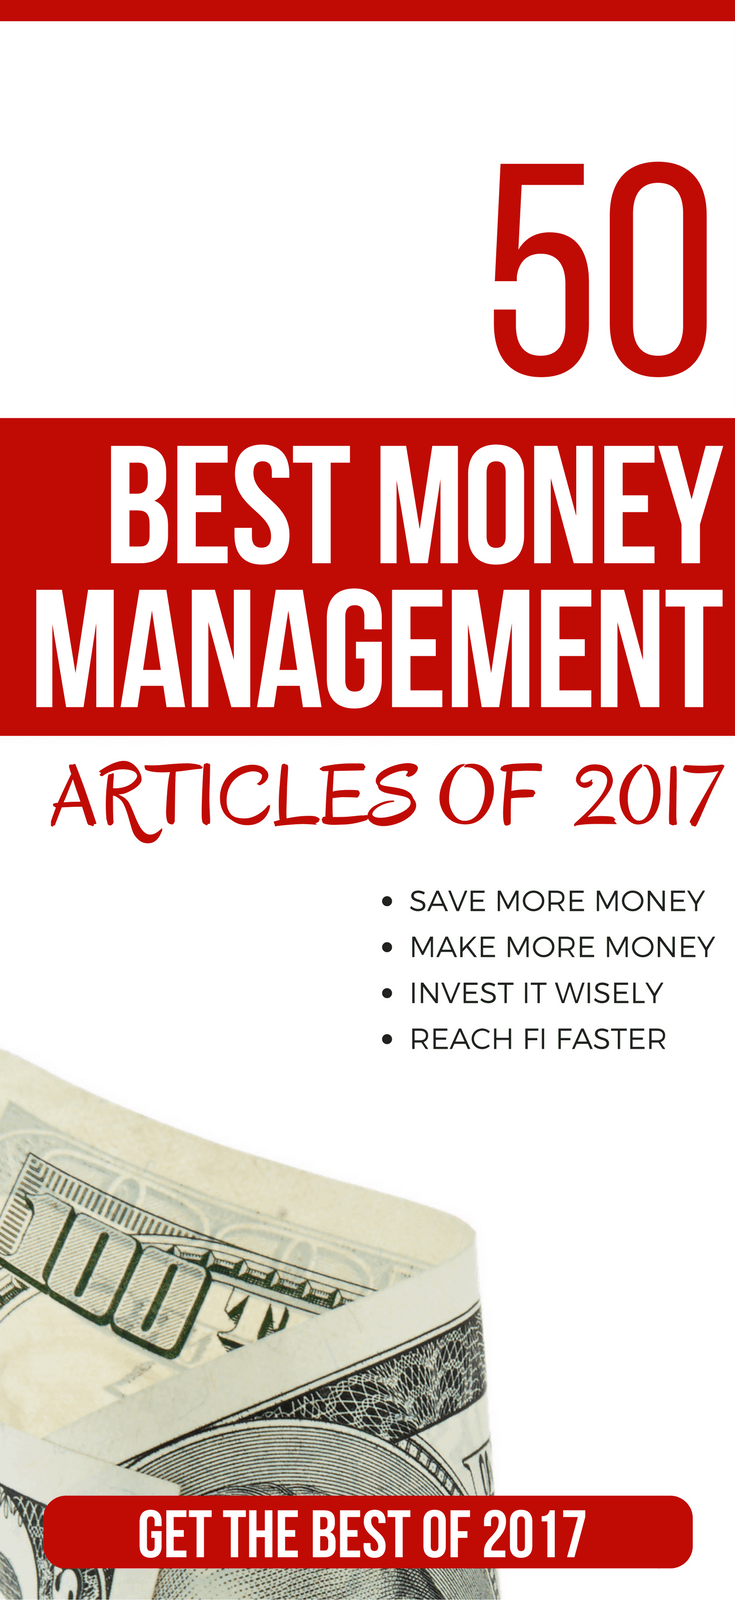 Top 50 Money Management Posts Of 2017 -- Improve your money management skills. Increase your income. Think smarter about your money. These are the top 50 blog posts of 2017 to help!